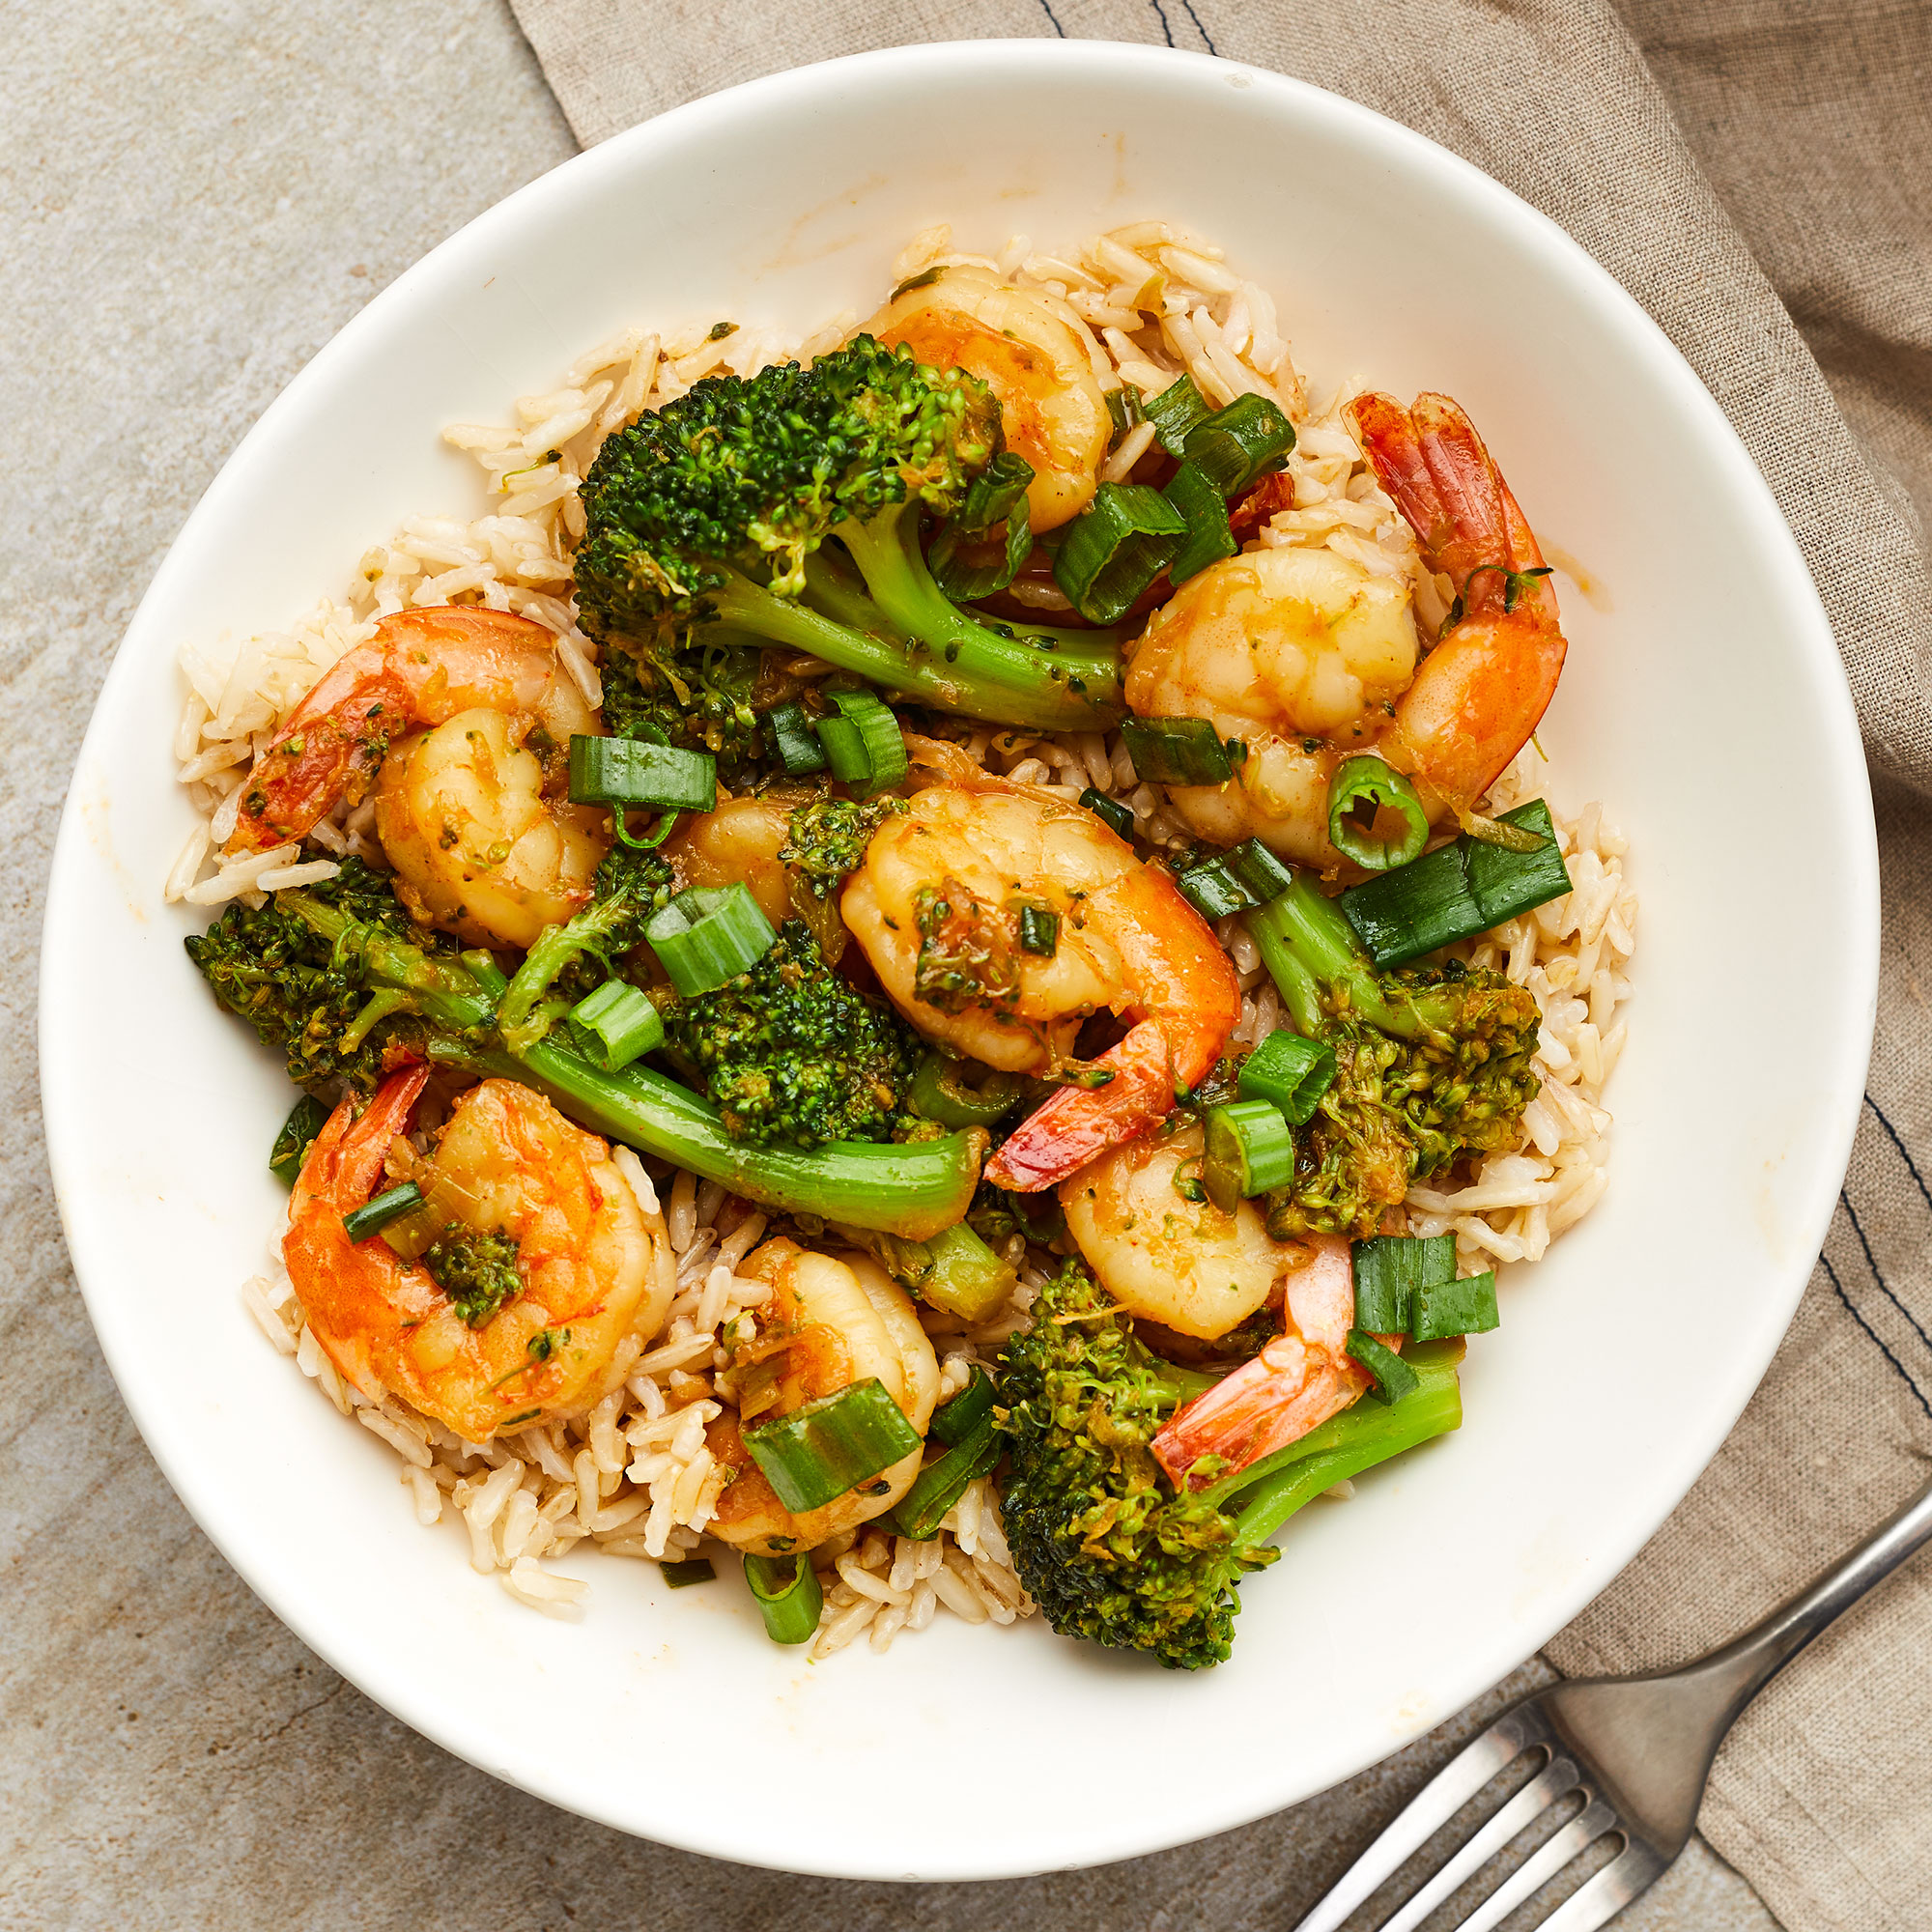 Shrimp & Broccoli Stir-Fry